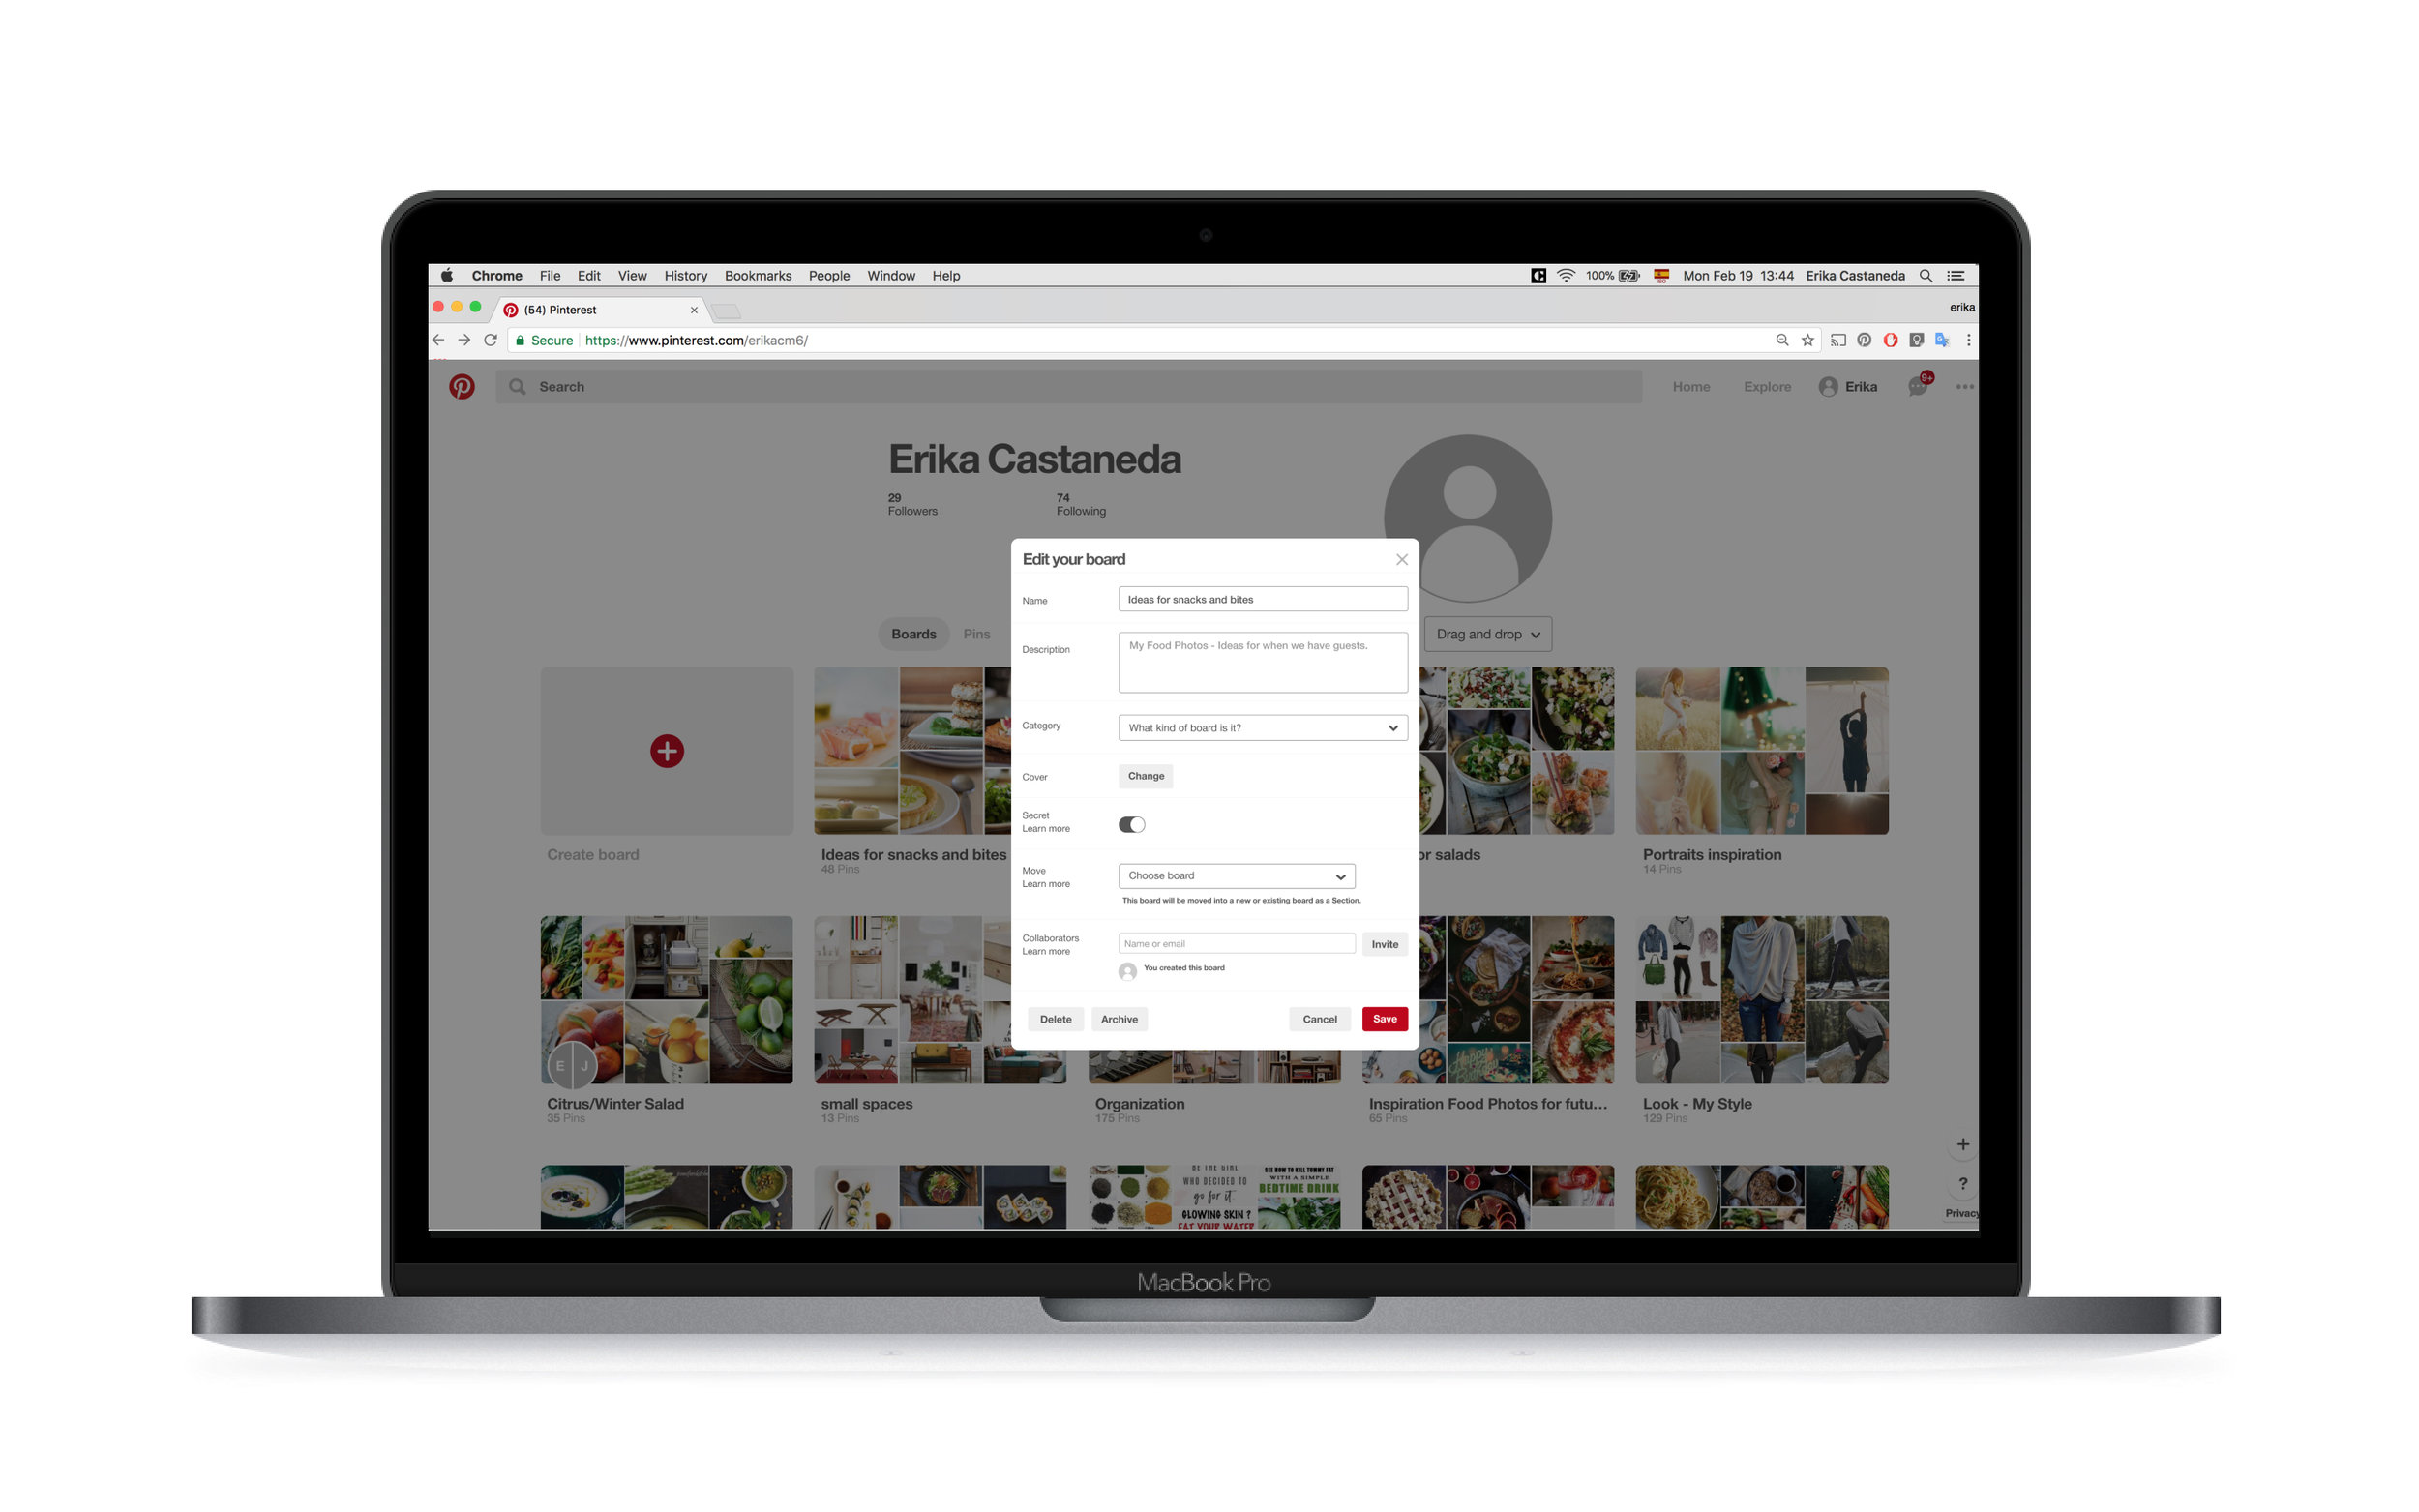 MacBook Pro - Pinterest Redesign.jpg